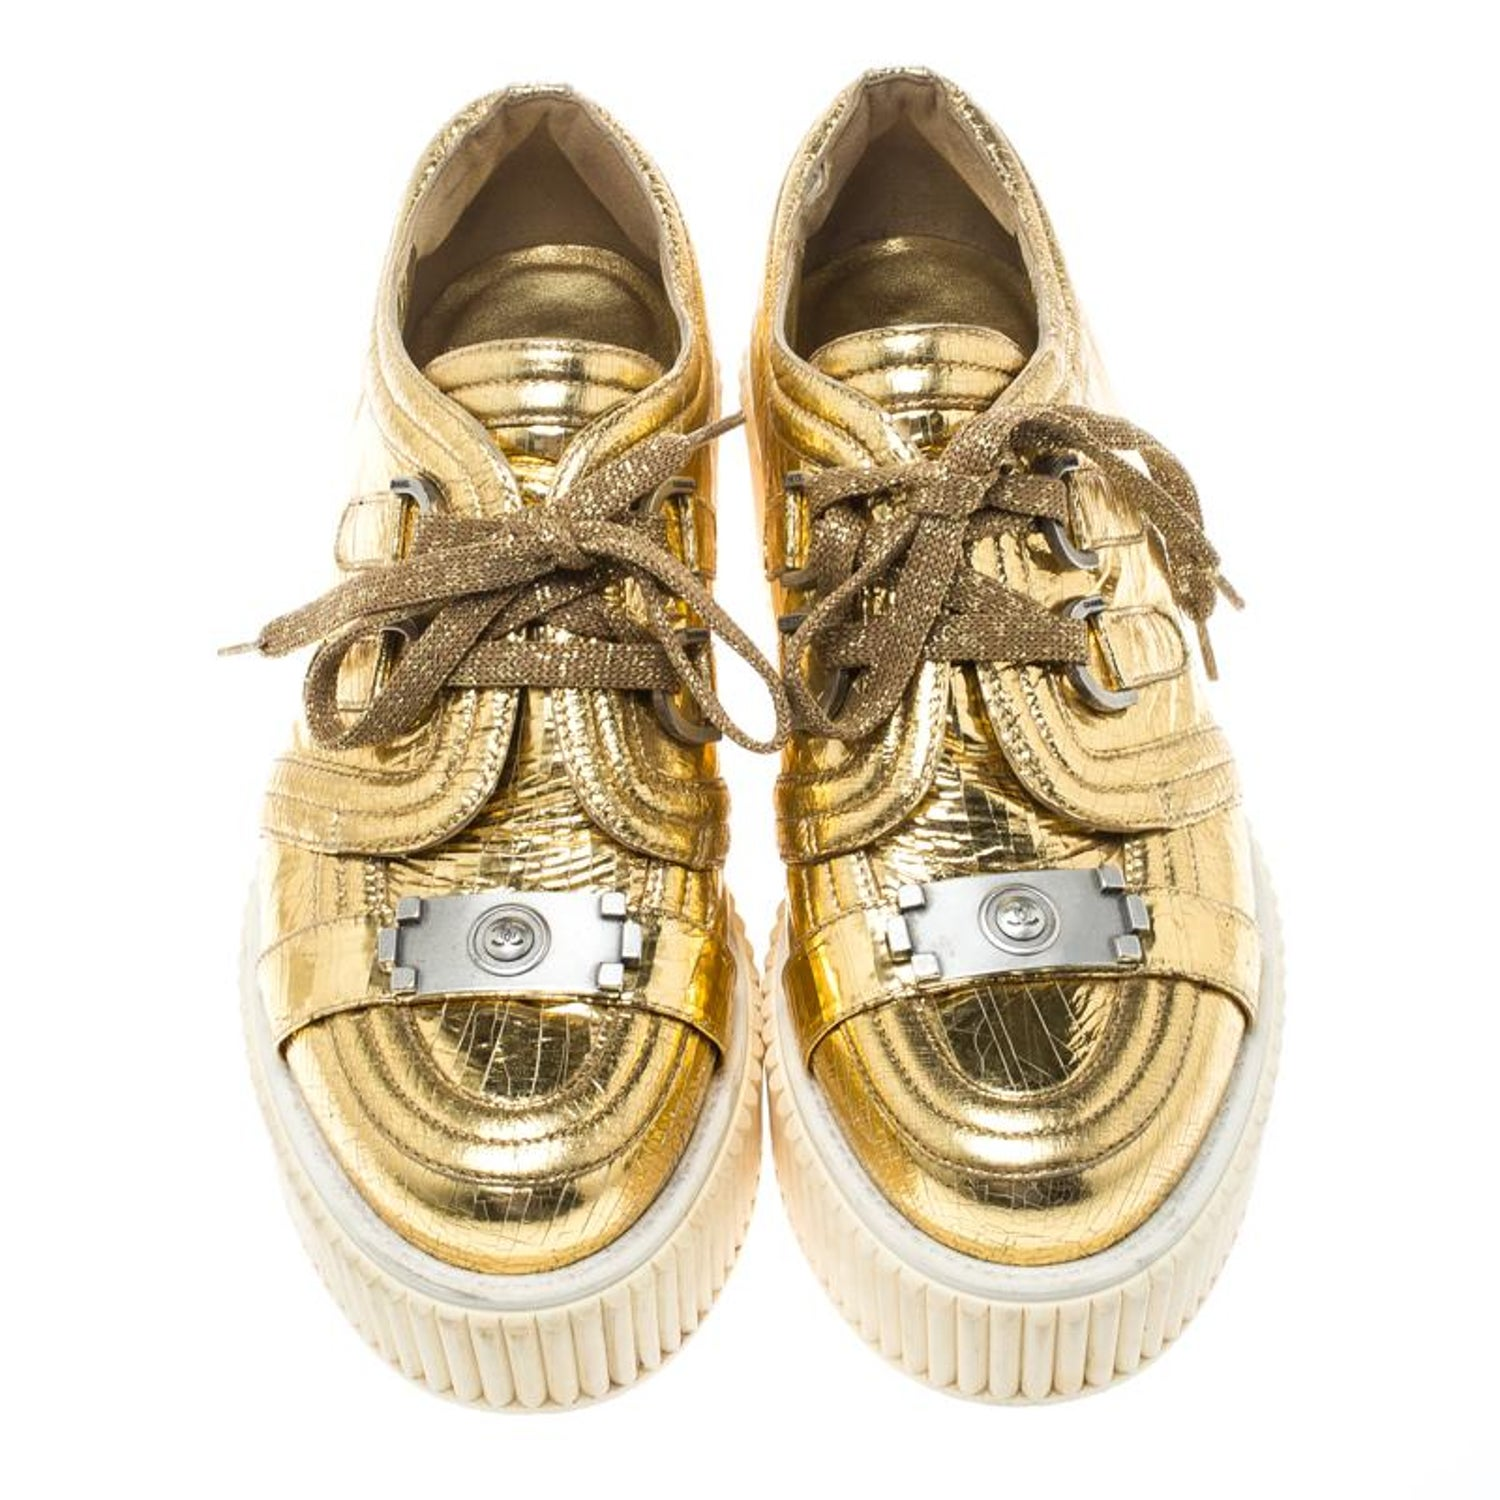 2c0ec514da33 Chanel Metallic Gold Distressed Foil Leather Creepers Platform Sneakers  Size 39. at 1stdibs